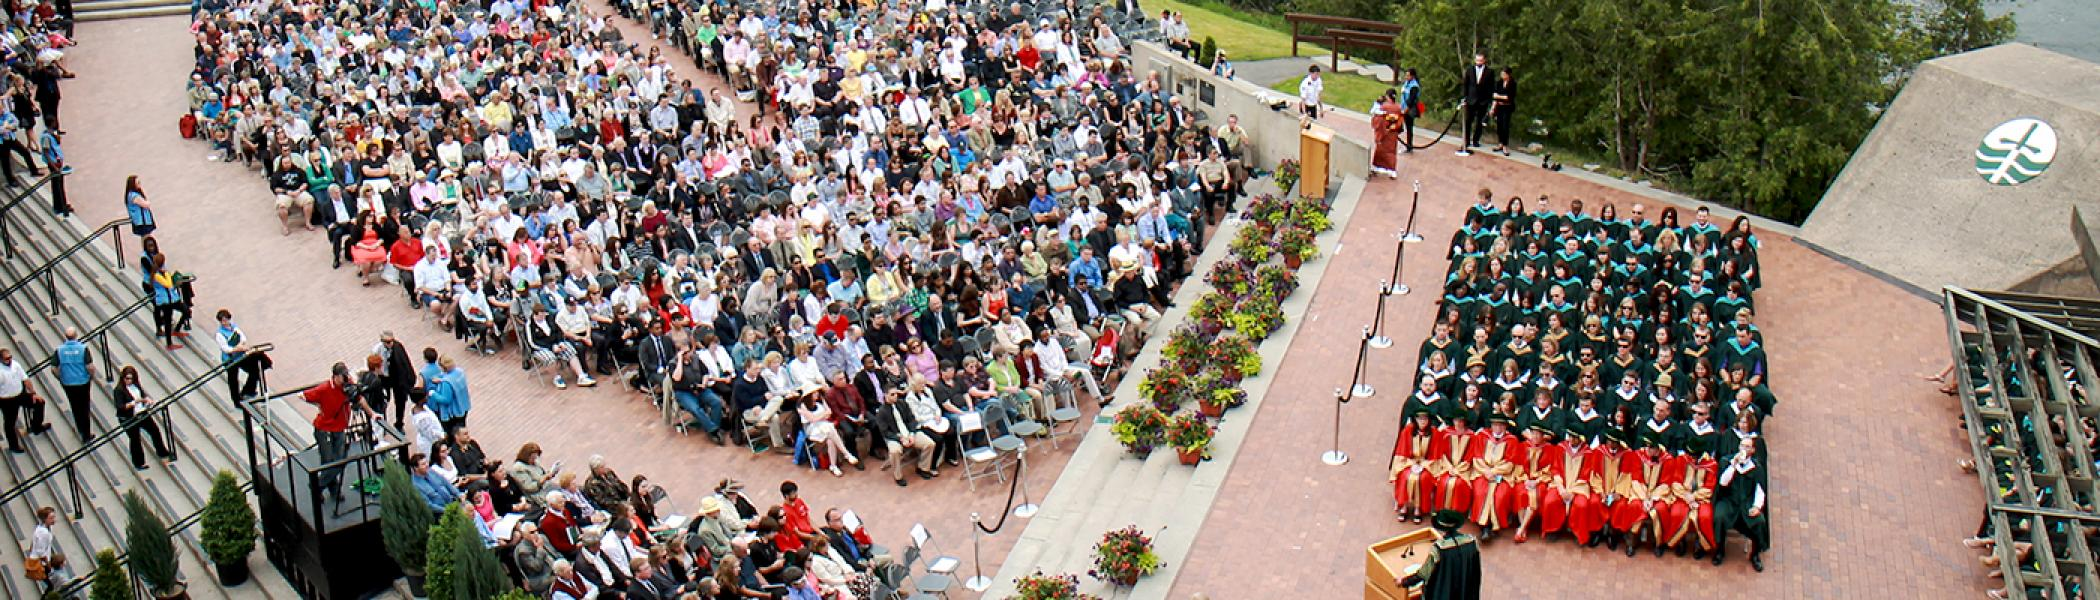 Arial photo of the podium at Bata library during convocation. The seats are all full.